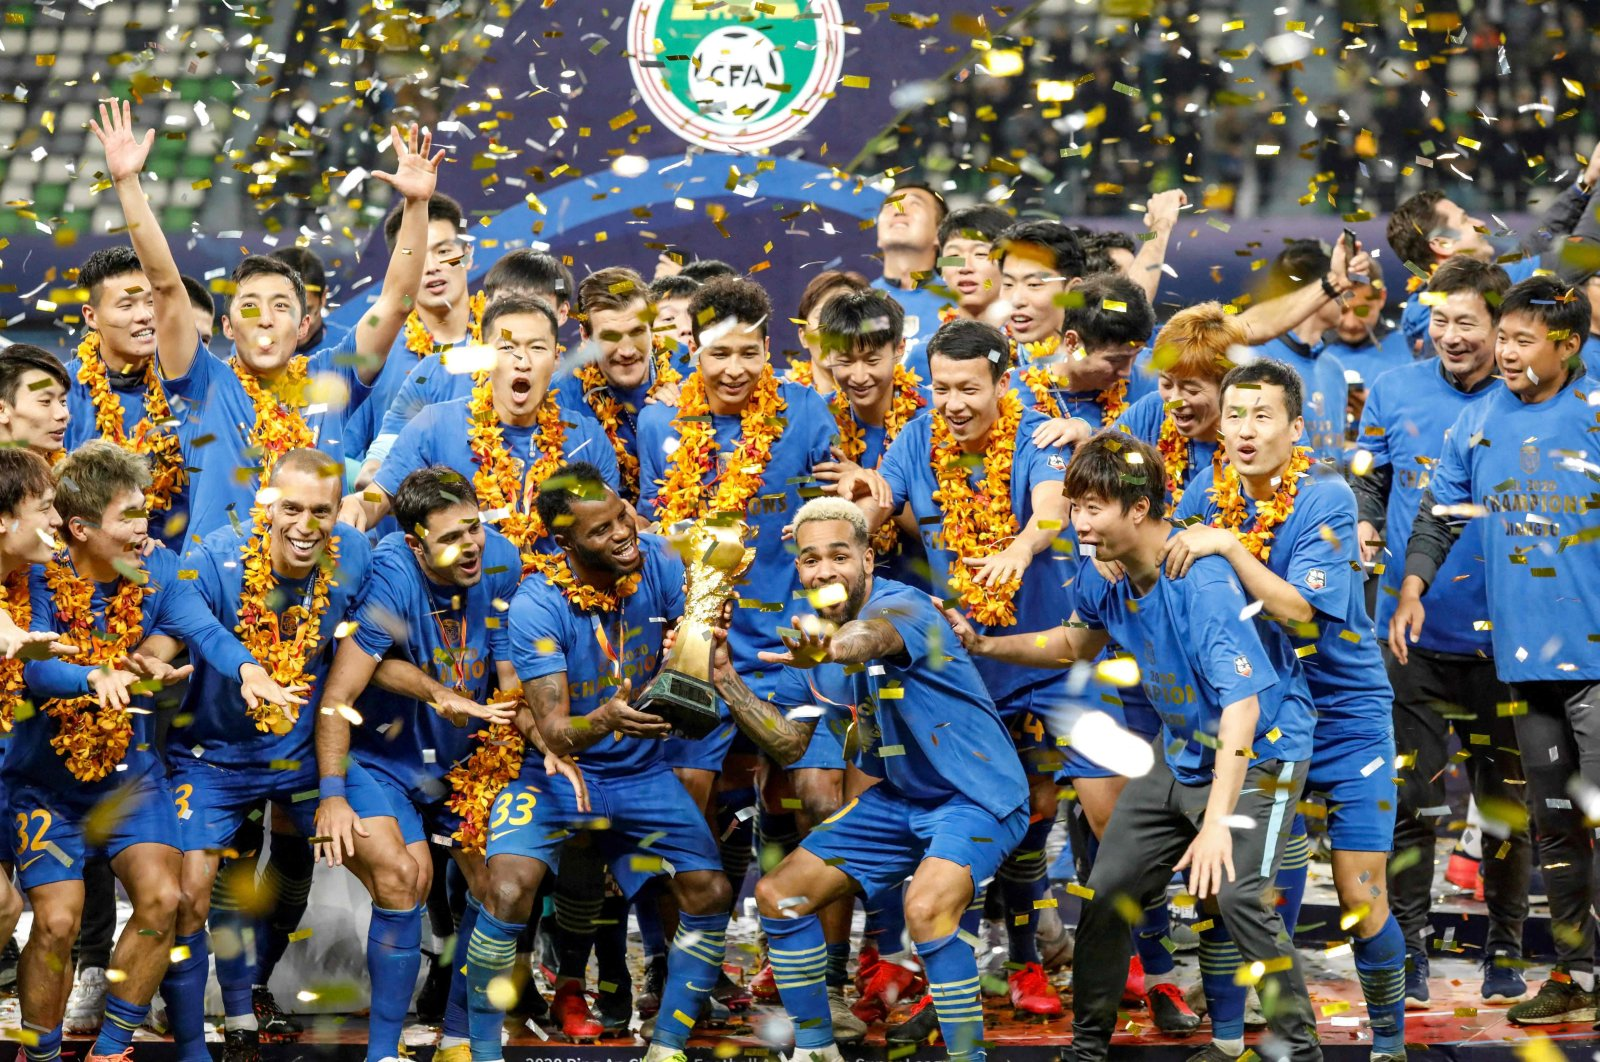 Jiangsu Suning players and staff members celebrating after winning the Chinese Super League (CSL) football championship in Suzhou, eastern China, Nov. 12, 2020. (AFP Photo)